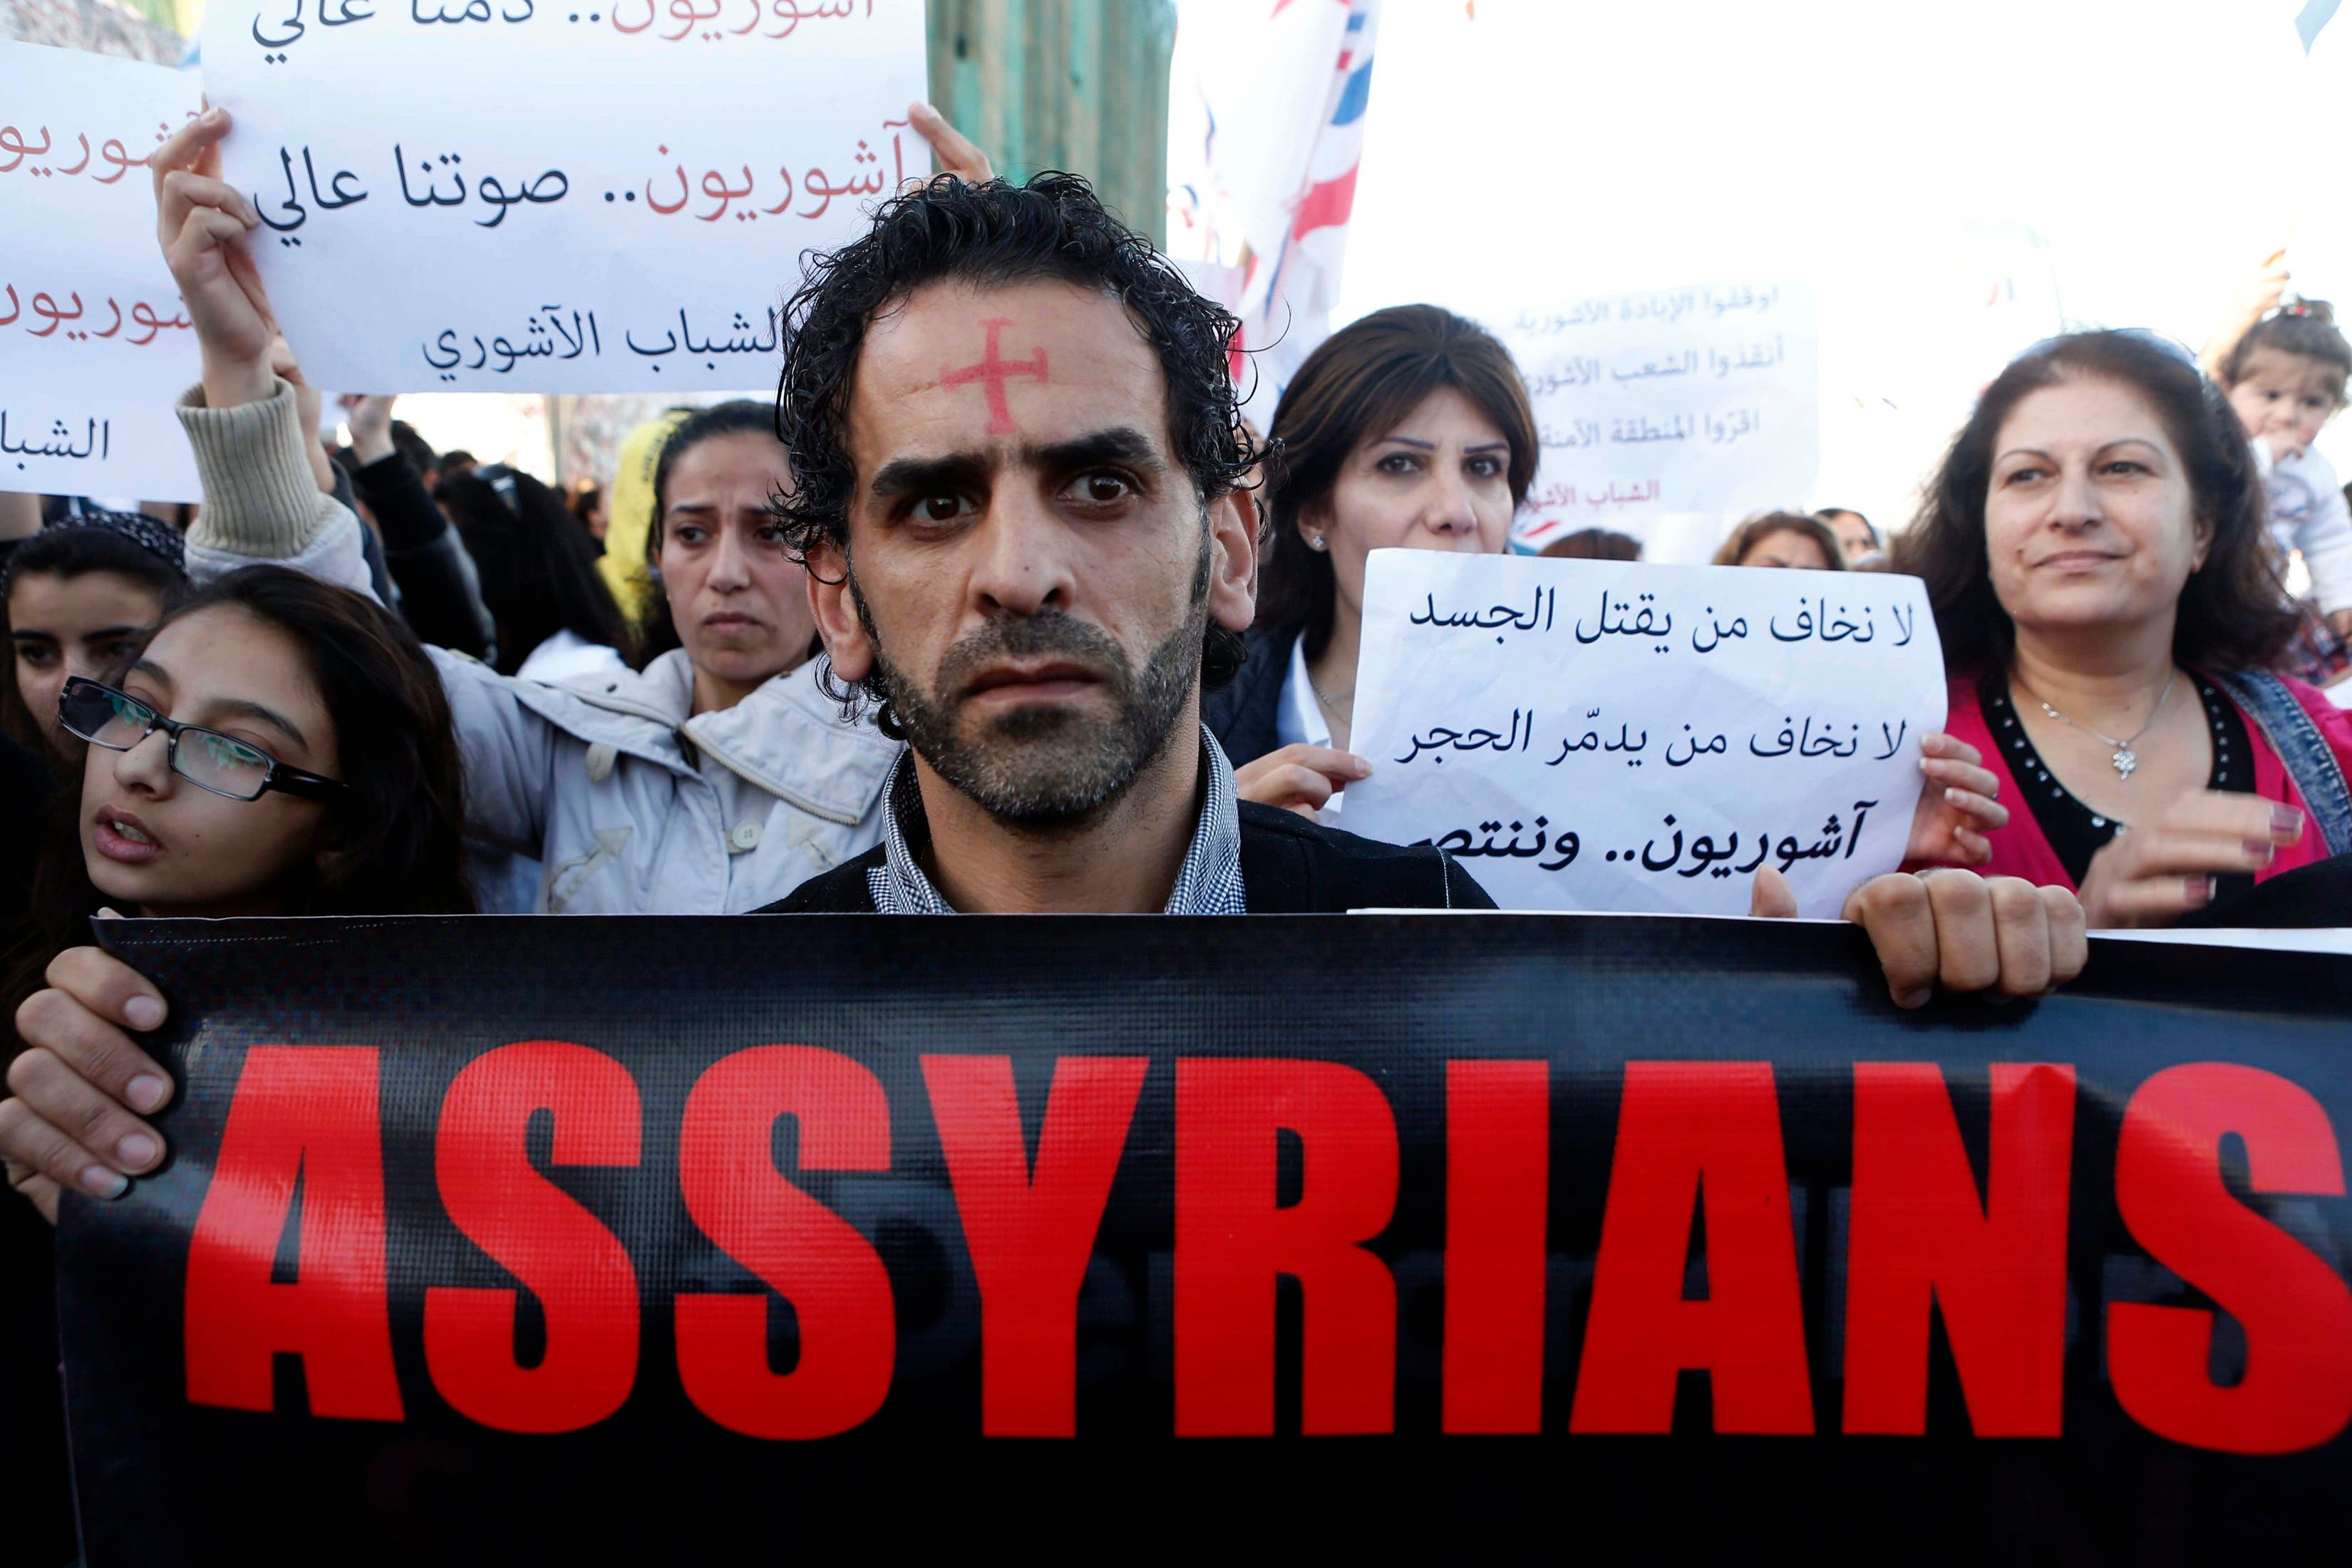 Assyrian hold placards during a gathering, on February 28, 2015 in the Lebanese capital Beirut. (Reuters)